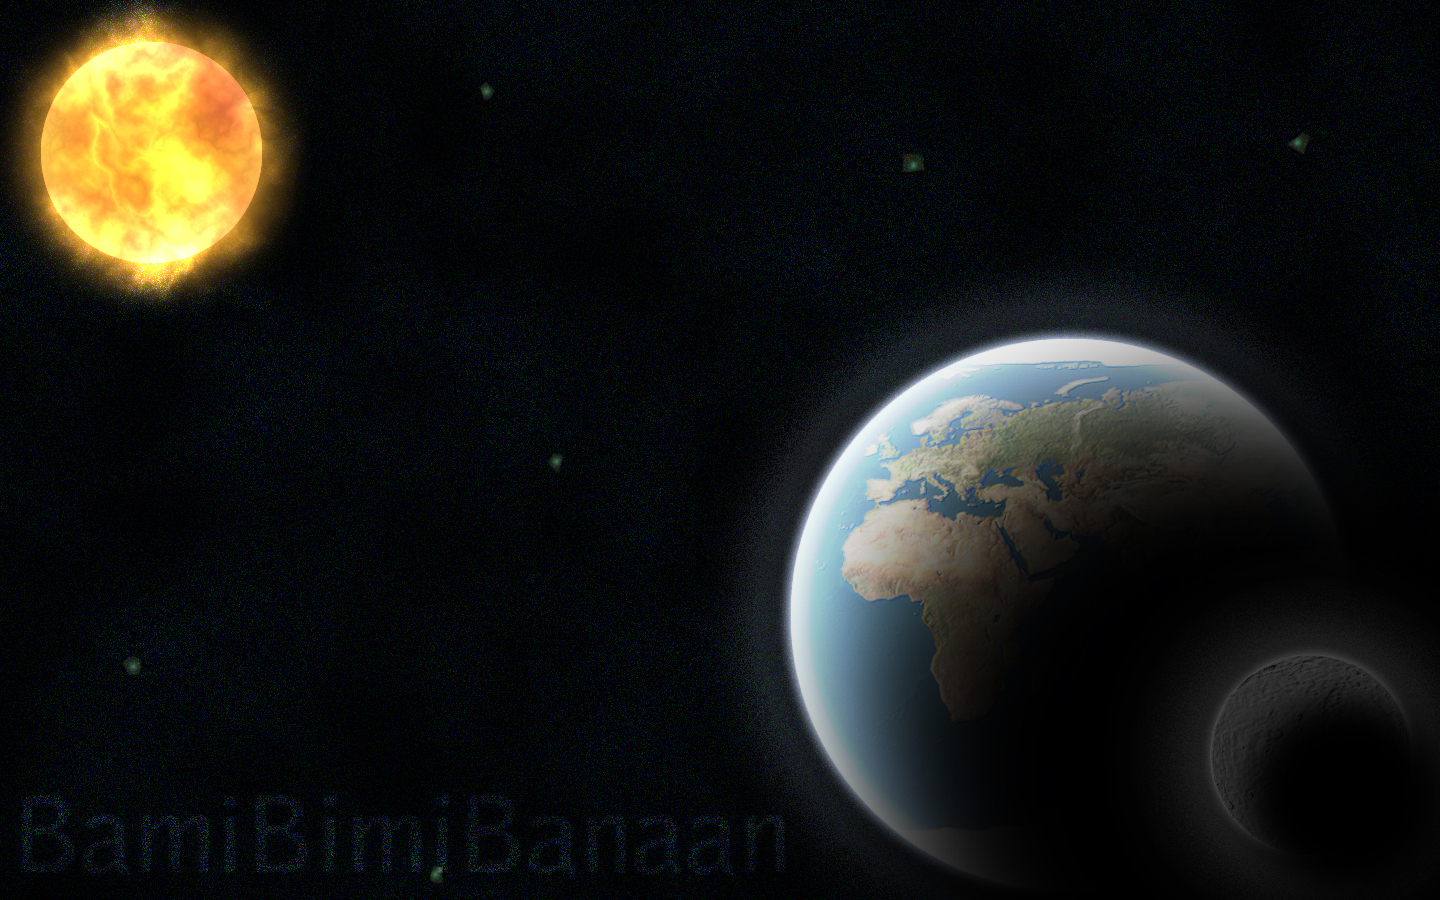 sun earth moon movement - photo #3